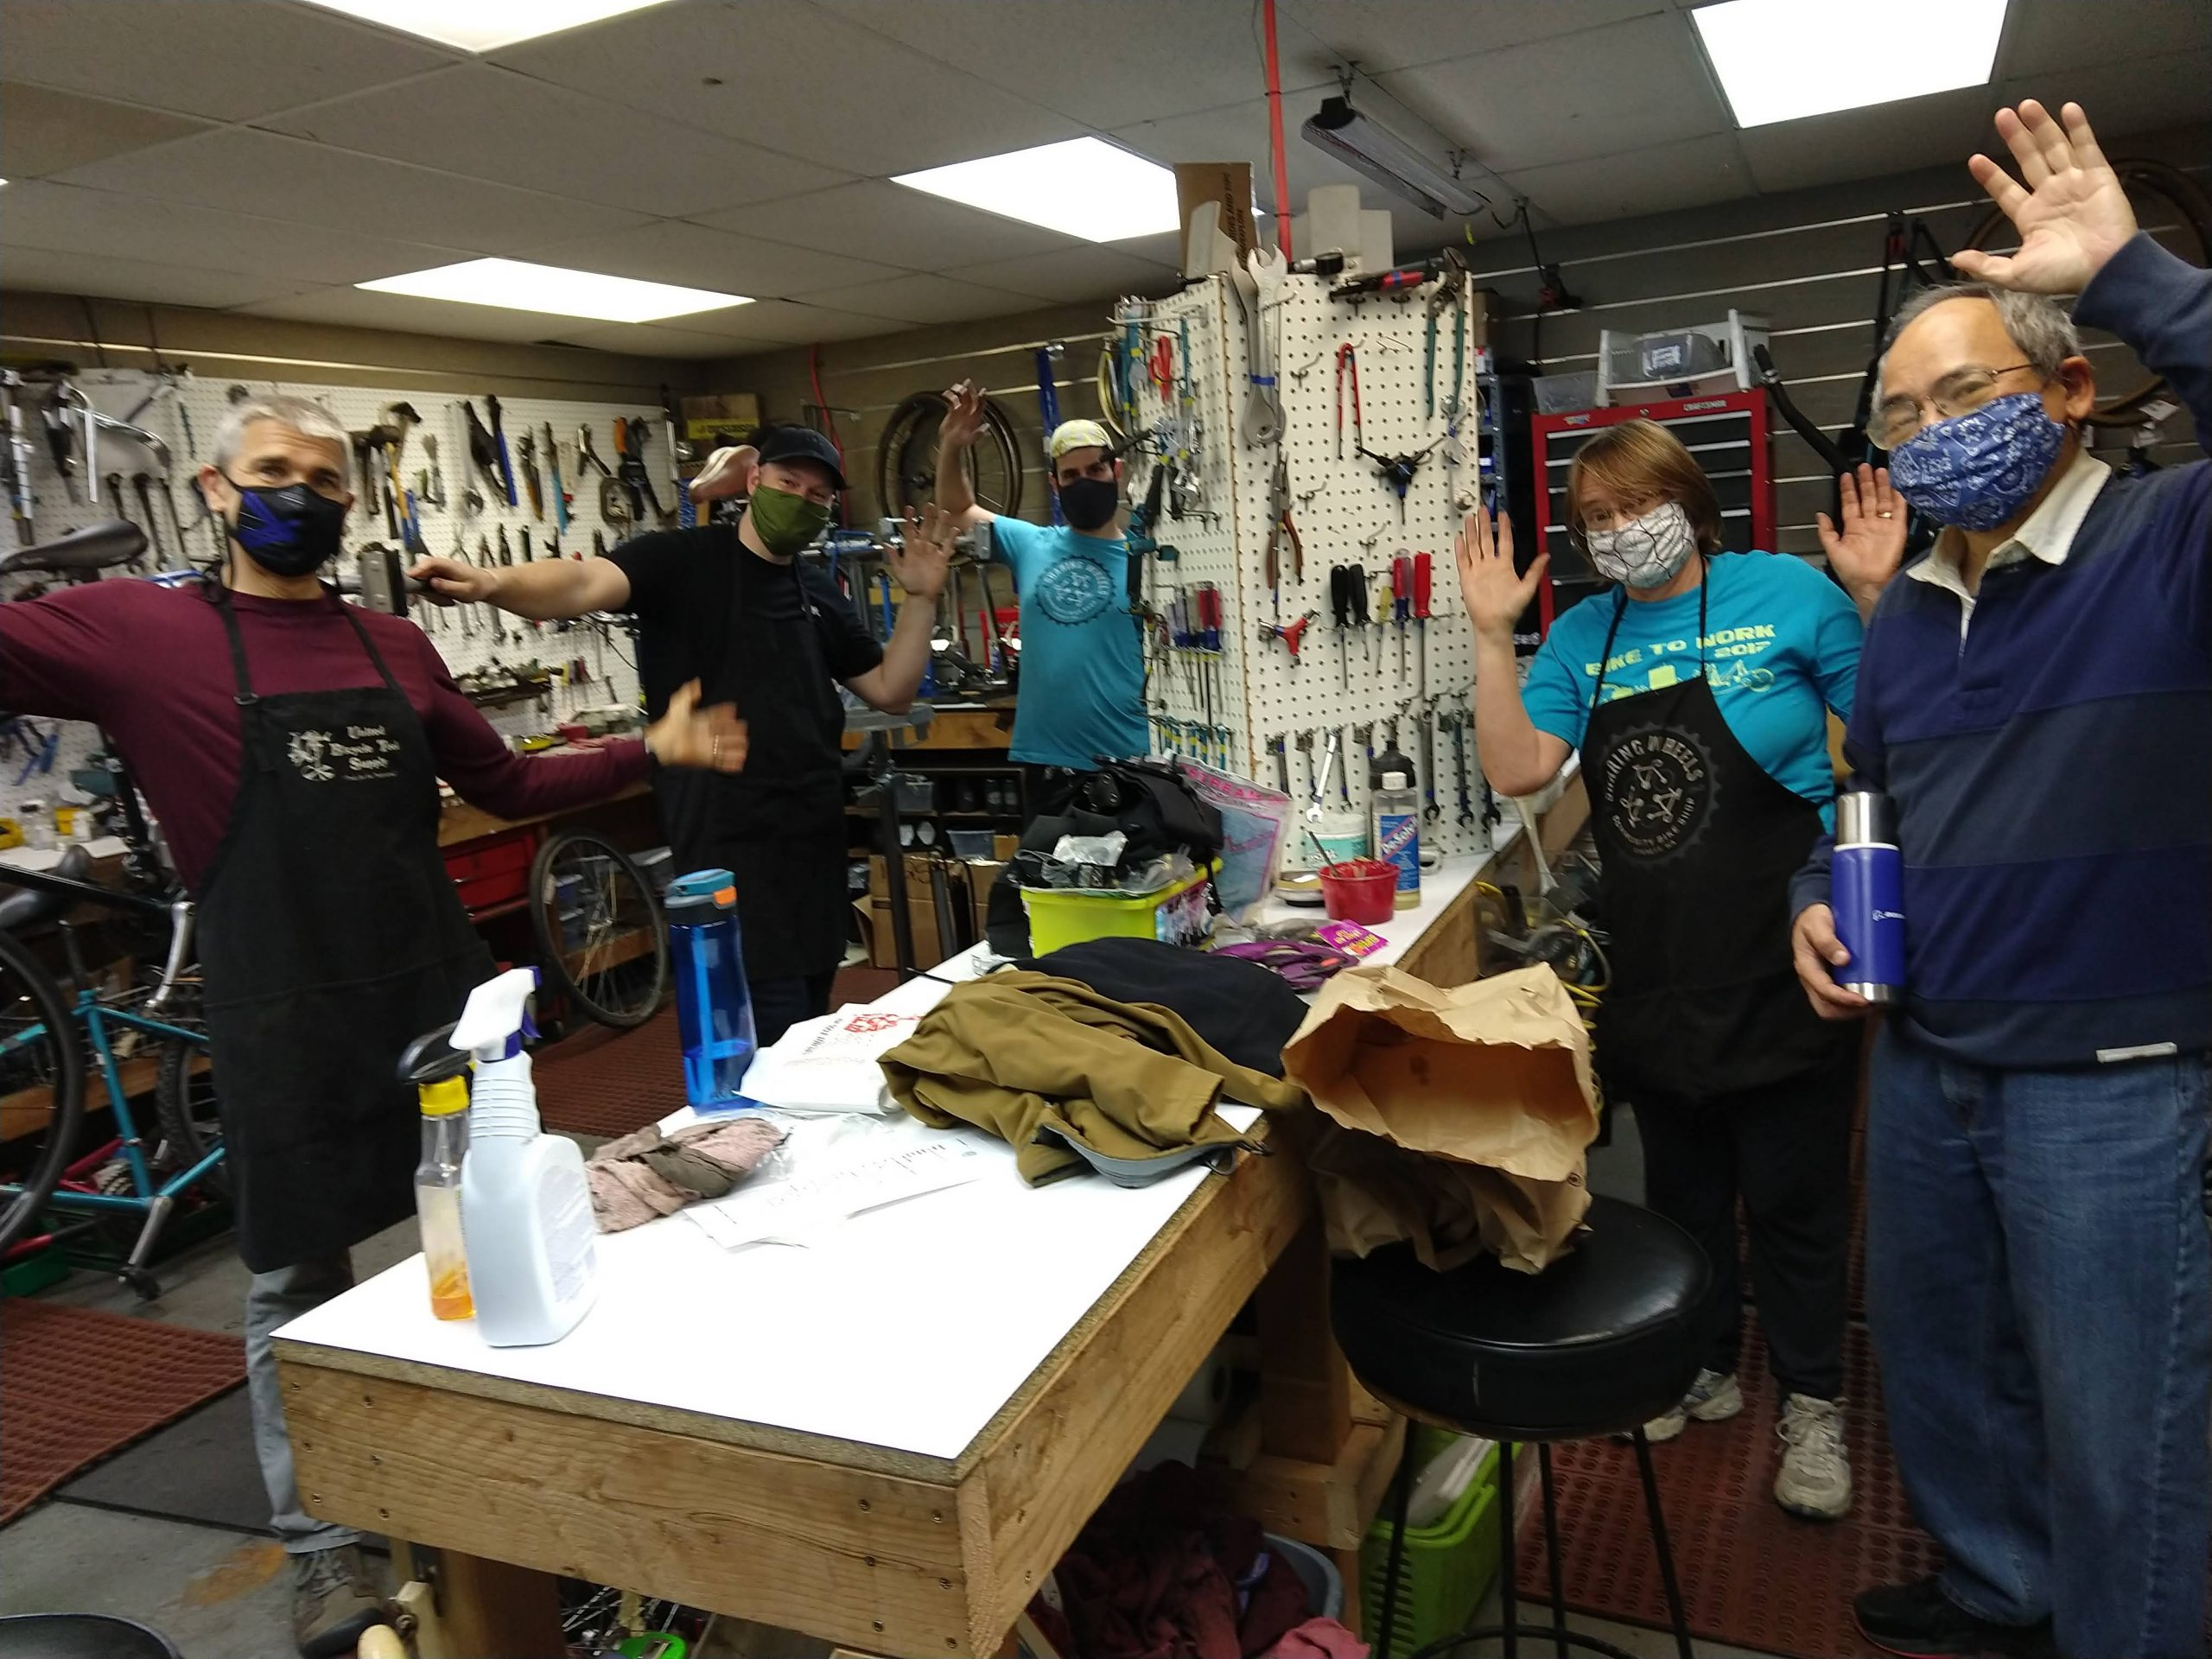 volunteers in masks spread out in the bike shop